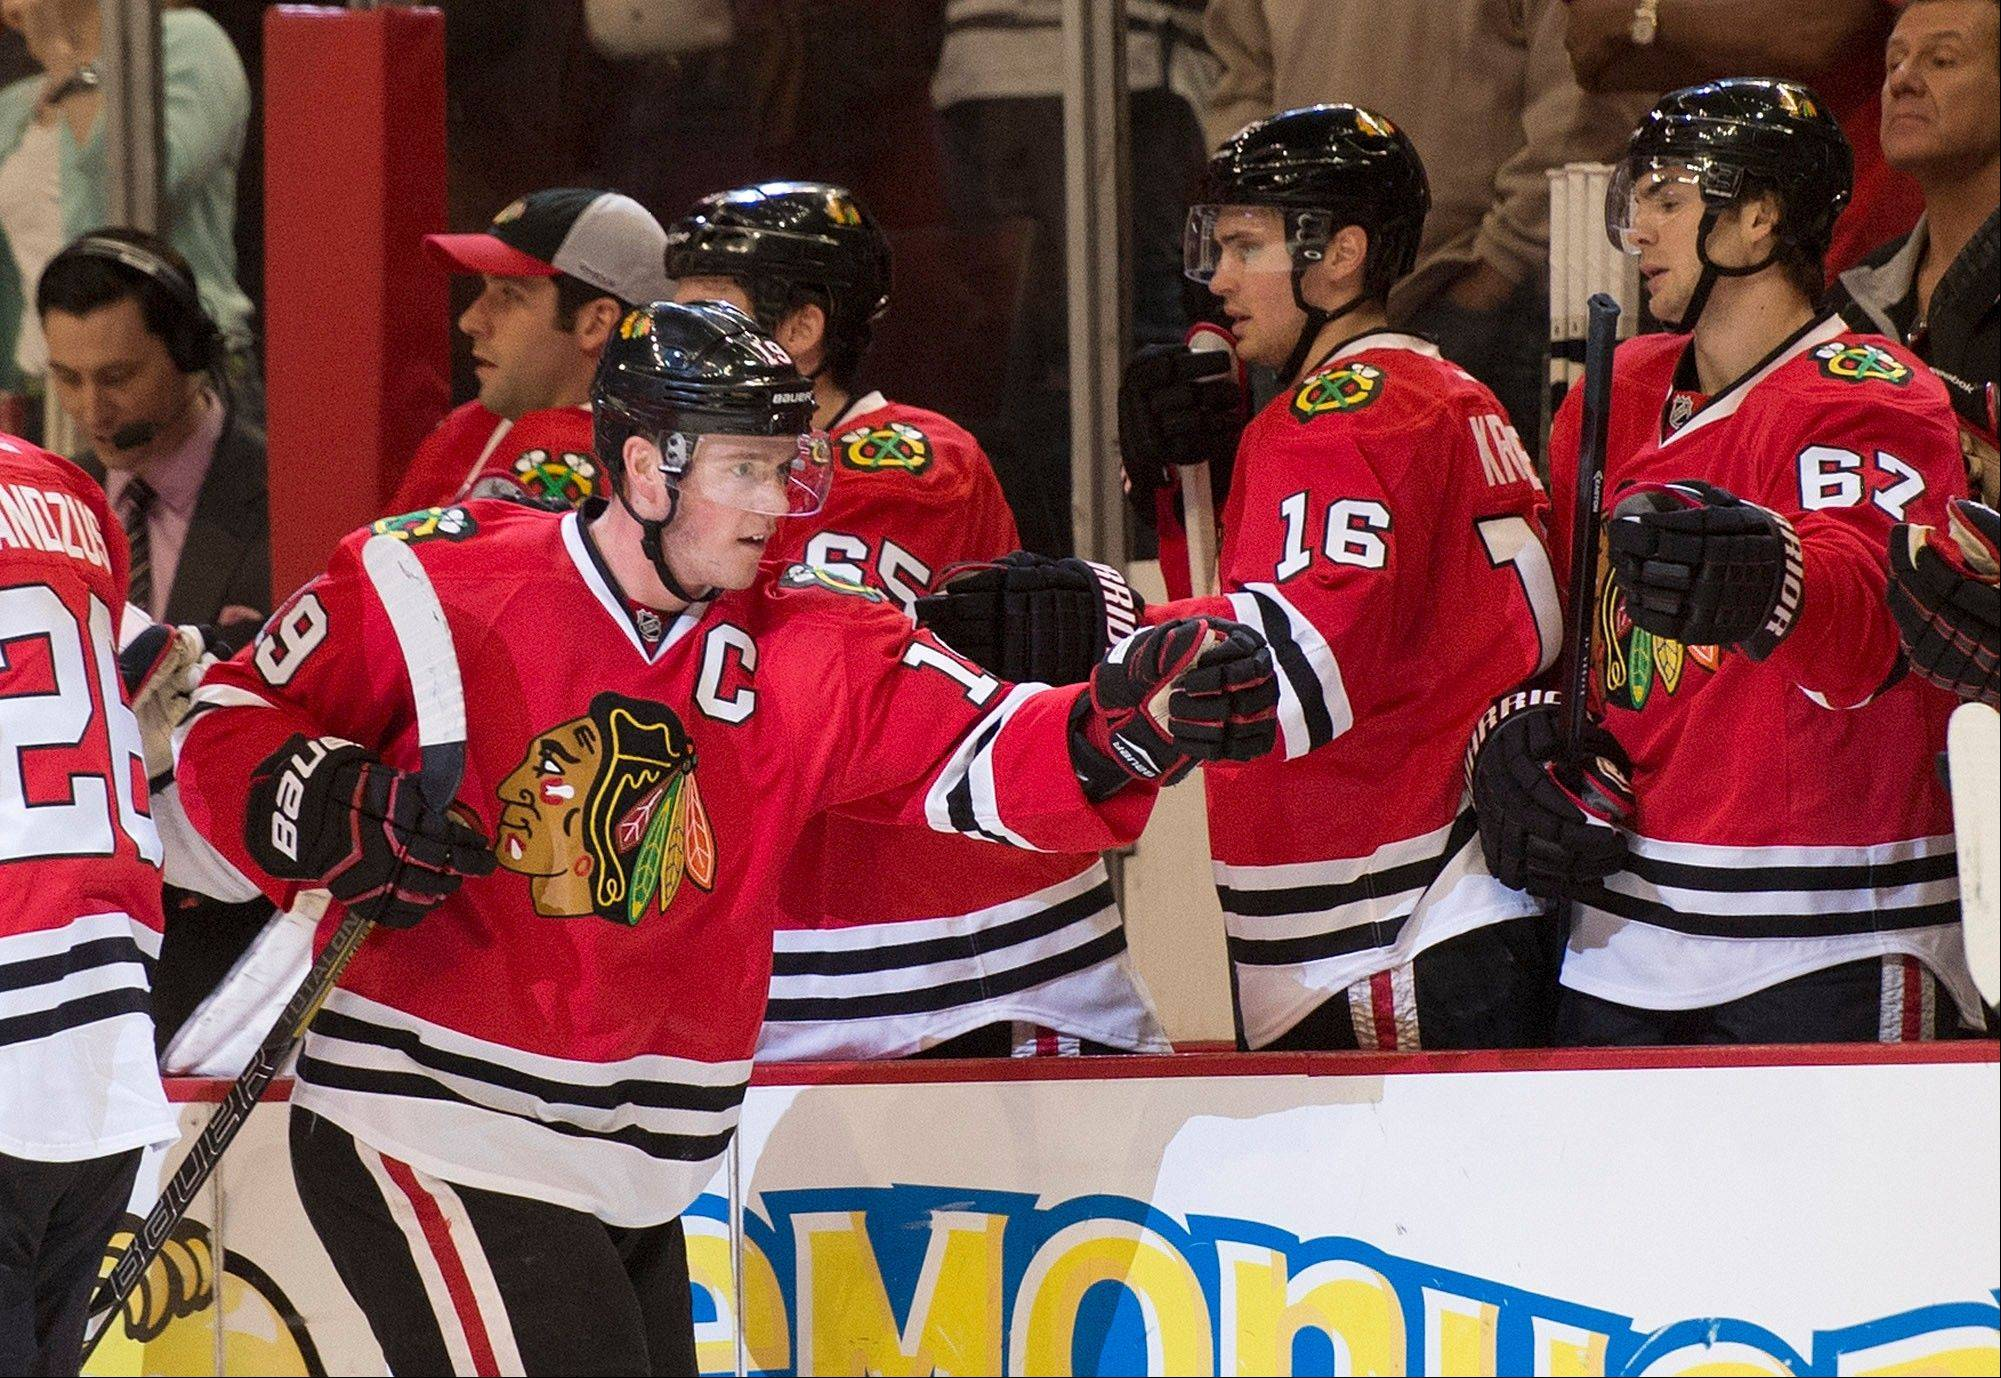 Chicago Blackhawks' Jonathan Toews, left, celebrates with his teammates after scoring a goal during the first period of an NHL hockey game against the Calgary Flames, Friday, April 26, 2013, in Chicago. (AP Photo/Brian Kersey)